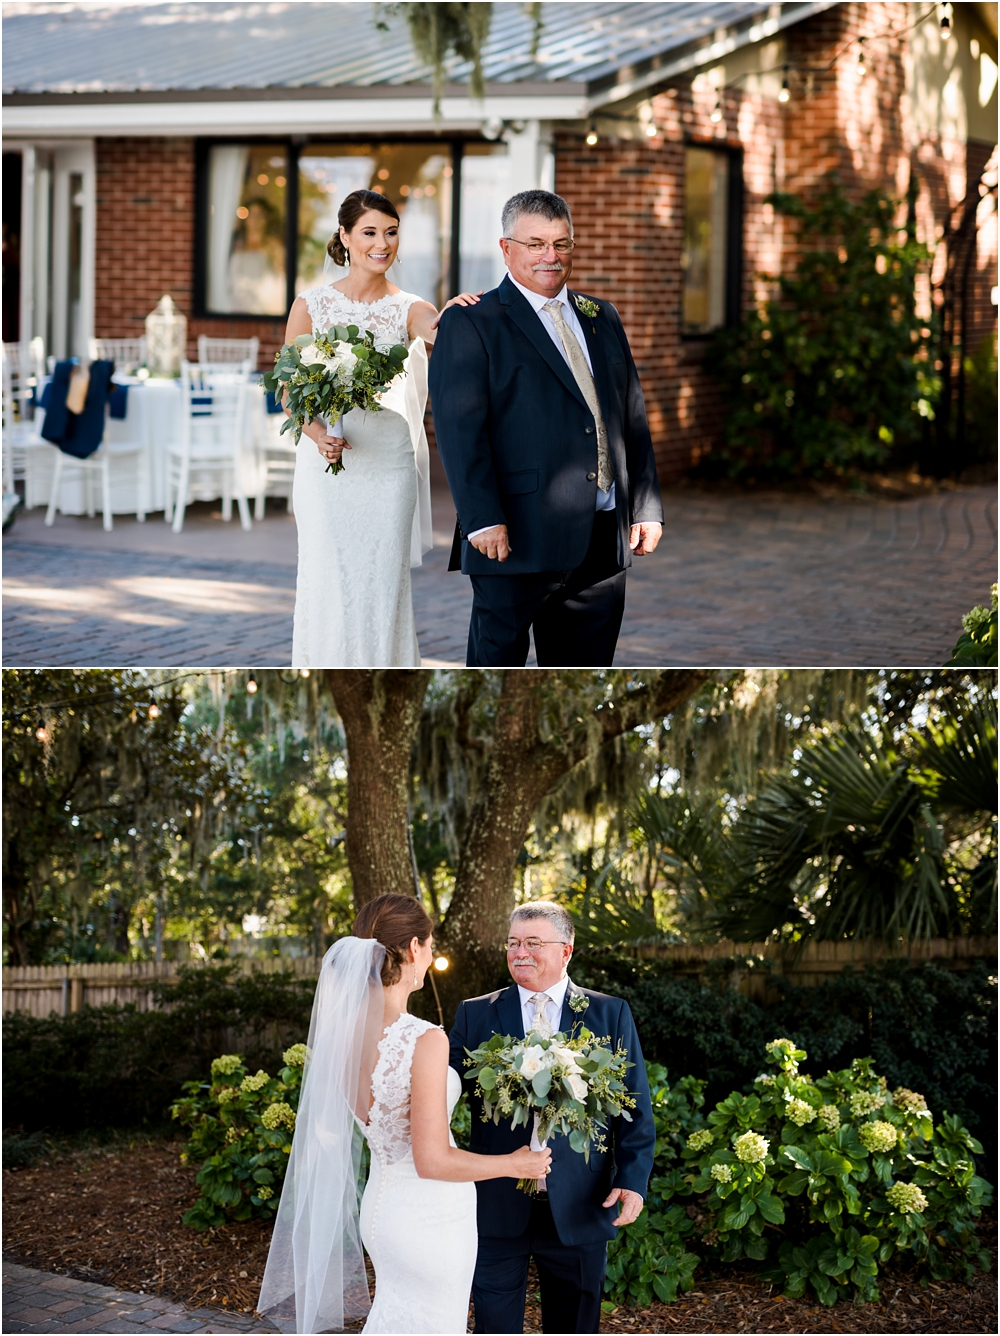 varner-florida-wedding-photographer-30a-panama-city-beach-destin-tallahassee-kiersten-grant-photography-38.jpg